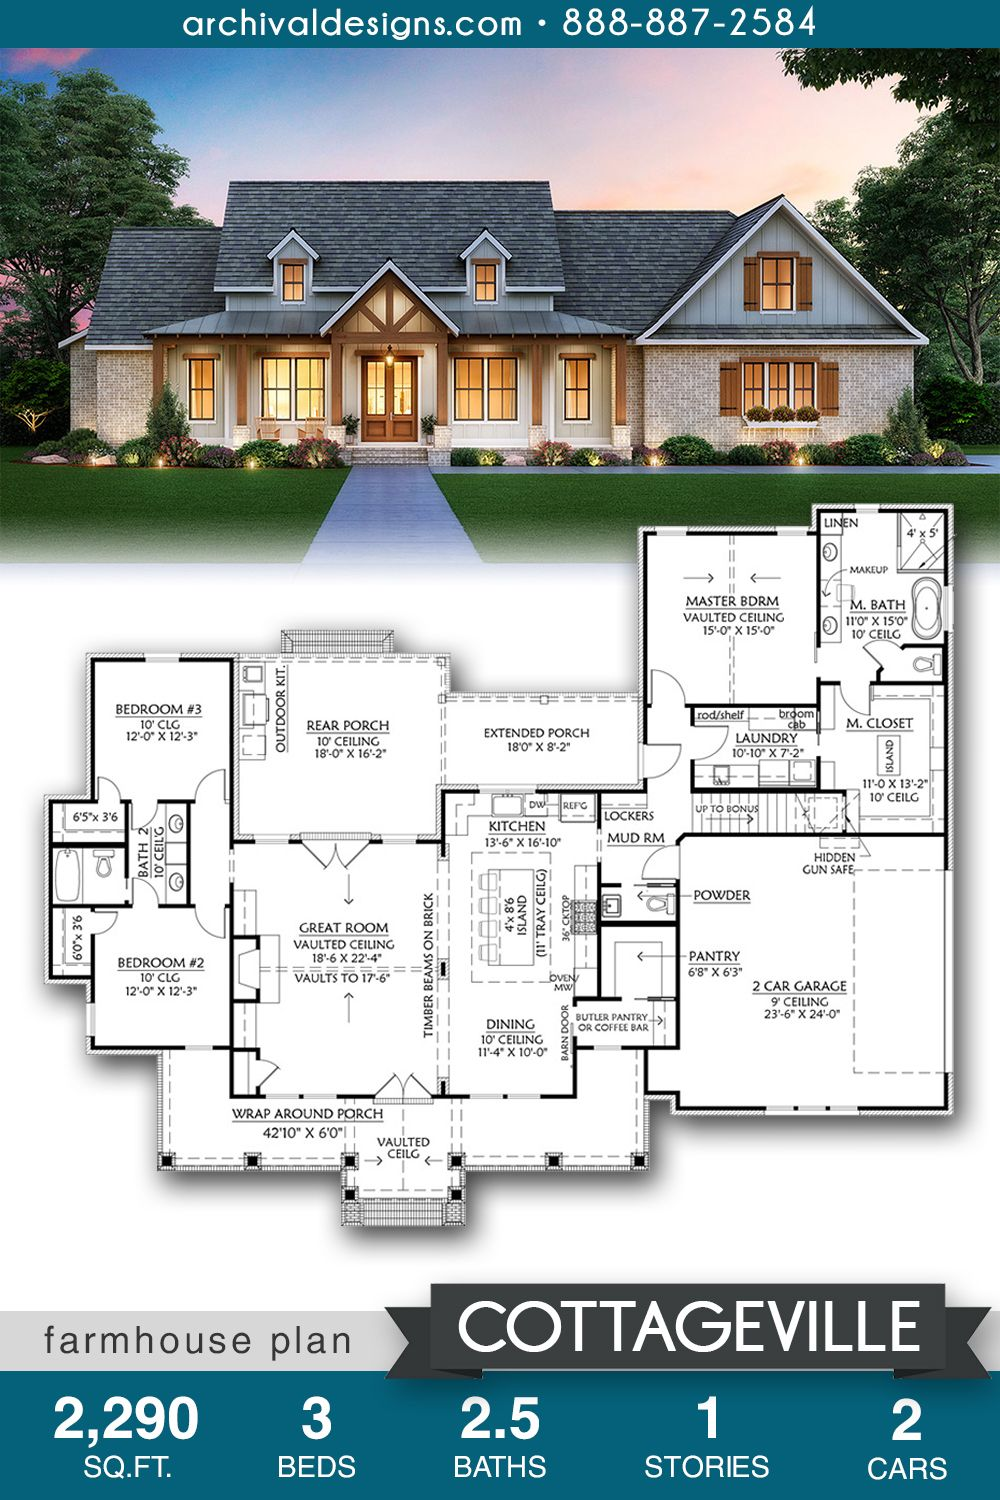 Cottageville Farmhouse | Ranch house plan with spr